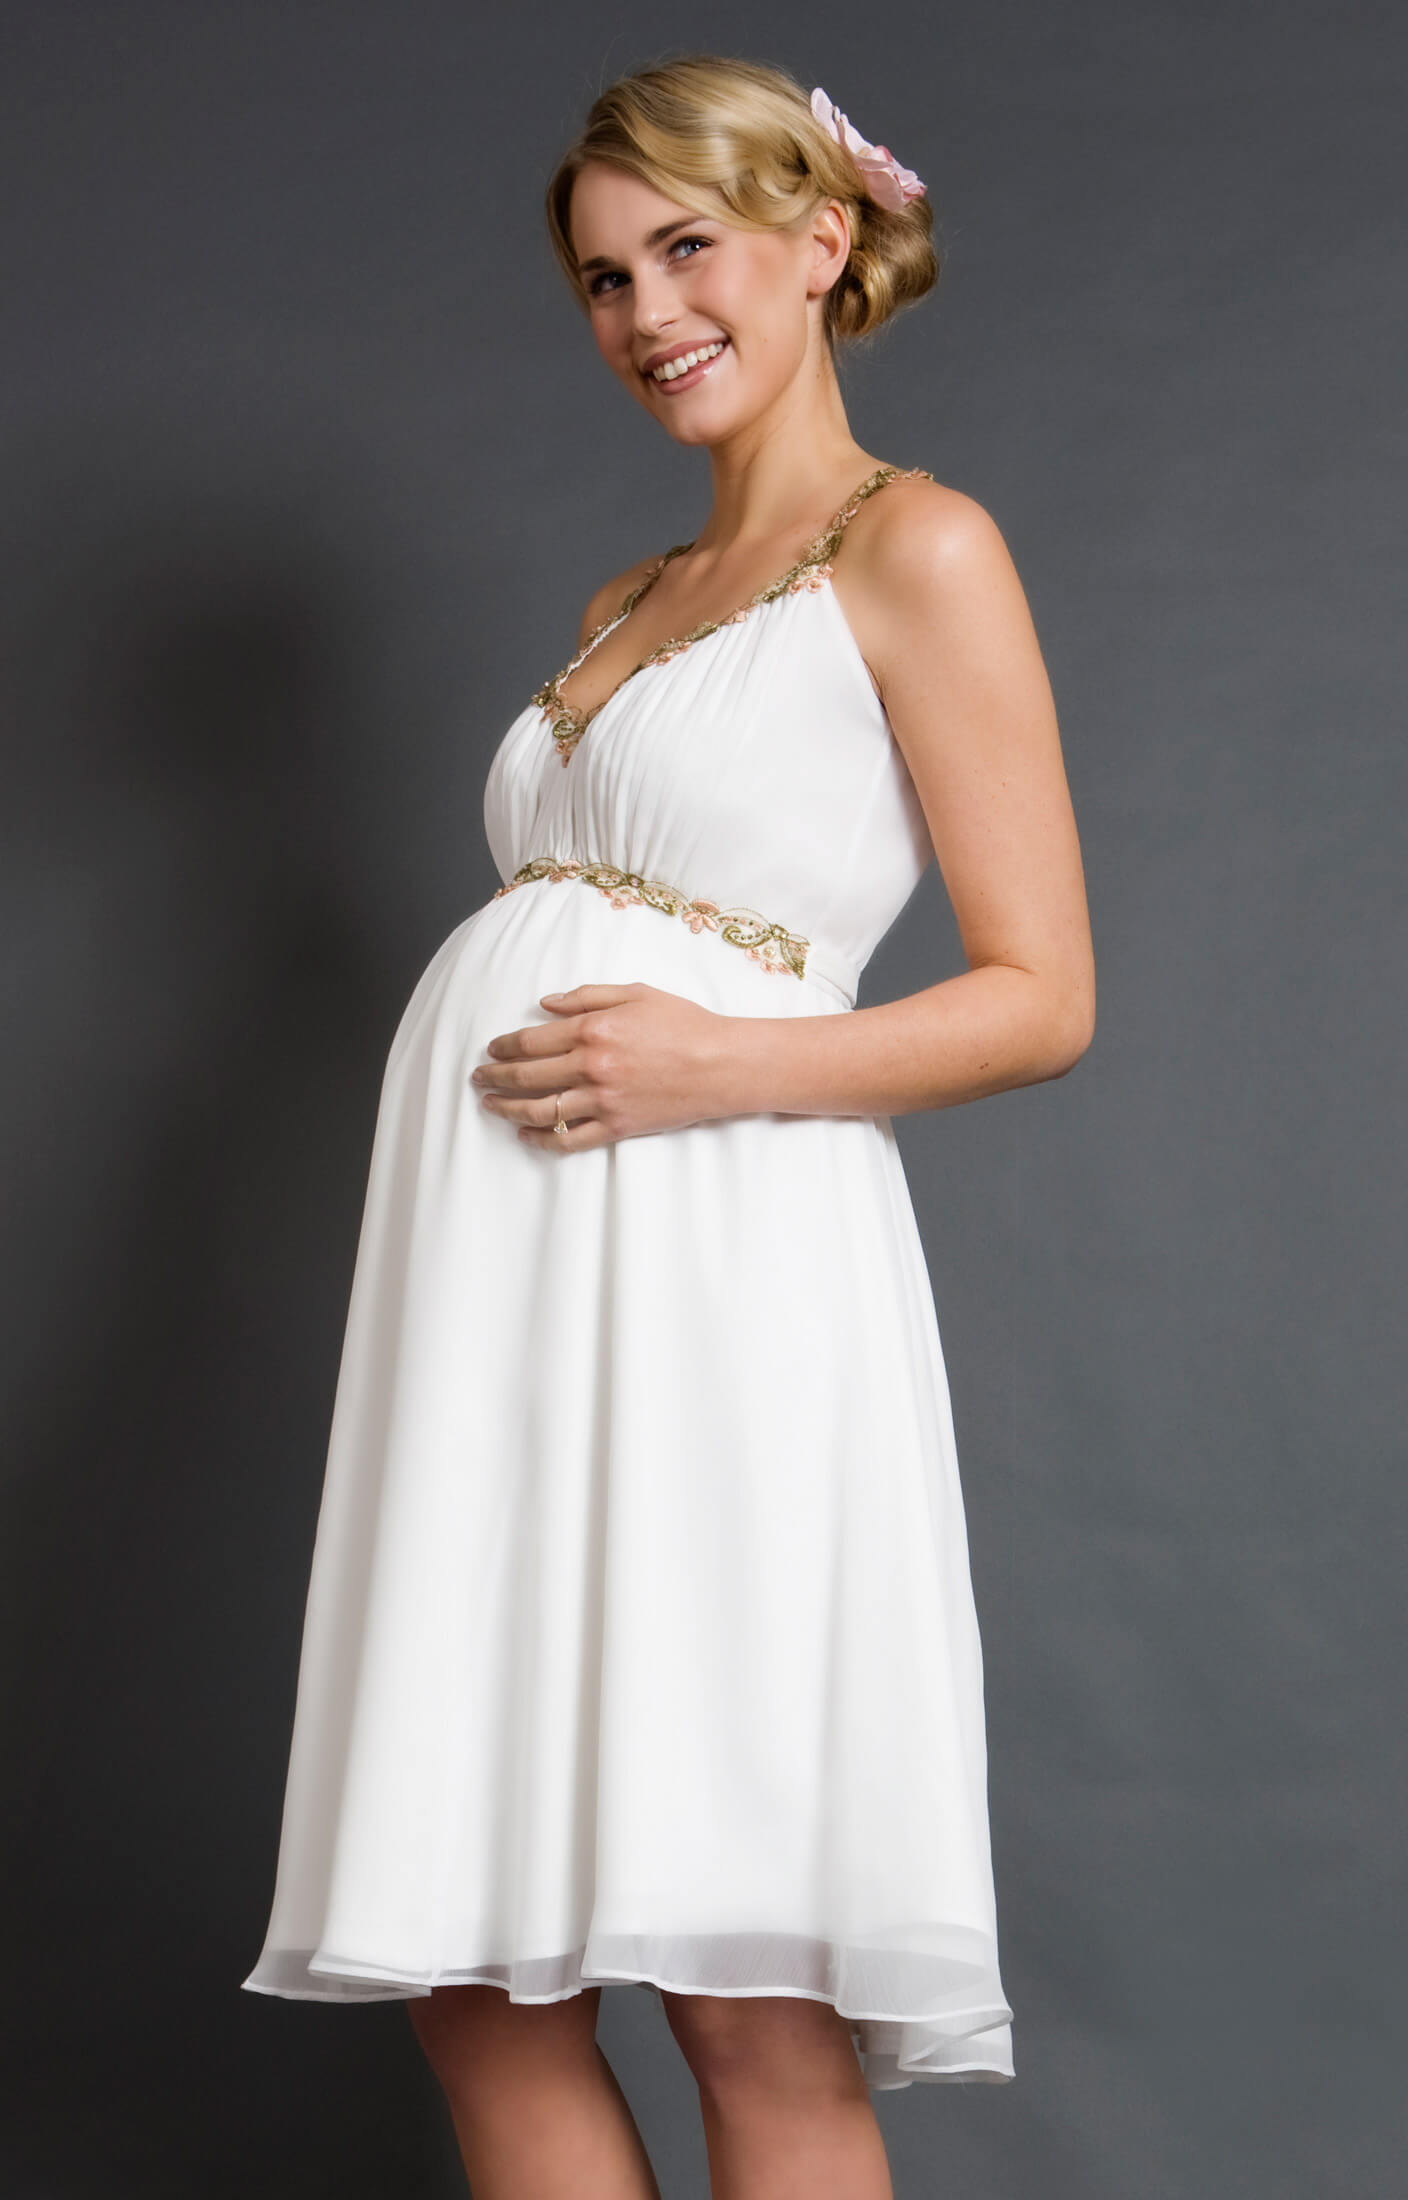 A vision in mist gray chiffon; our embellished Grecian maternity gown is a truly romantic choice for your glamorous evening occasion. Exquisite hand beading at the shoulders and empire waist catch the light and shimmer as you move, giving a subtle shine to the style.